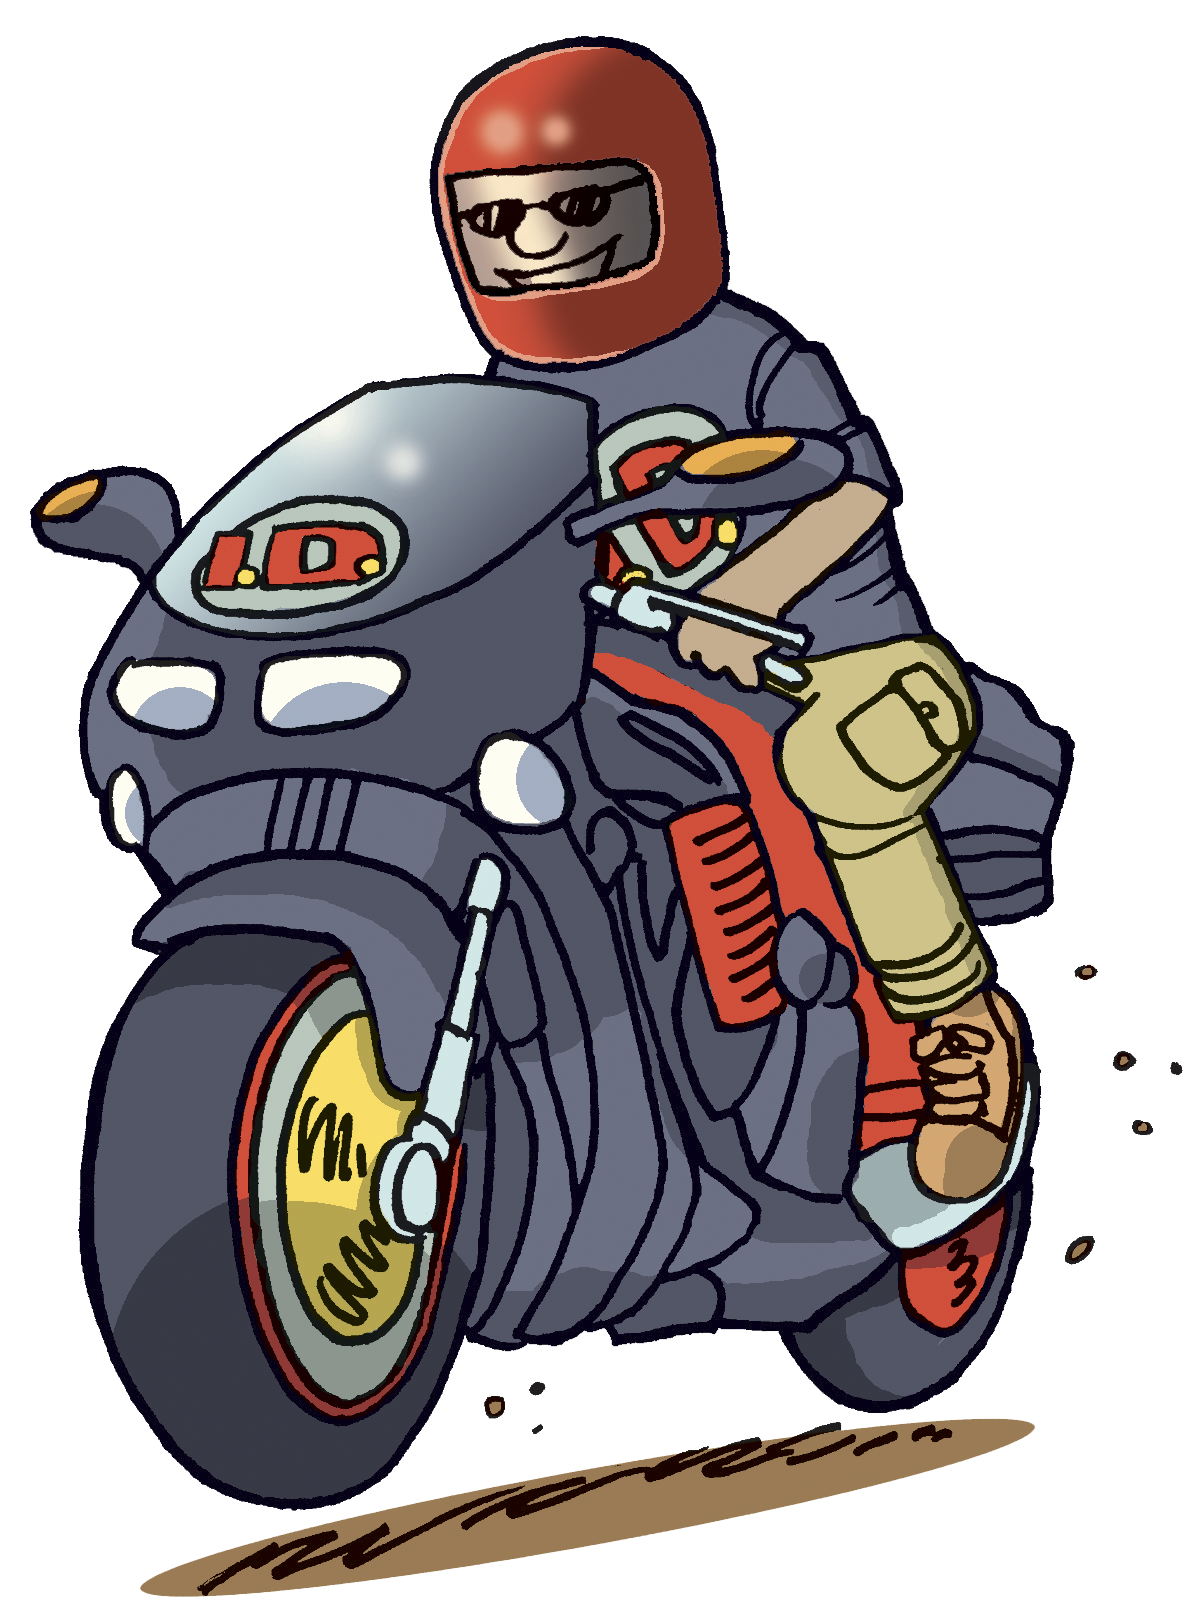 Clipart Motorcycle & Motorcycle Clip Art Images.